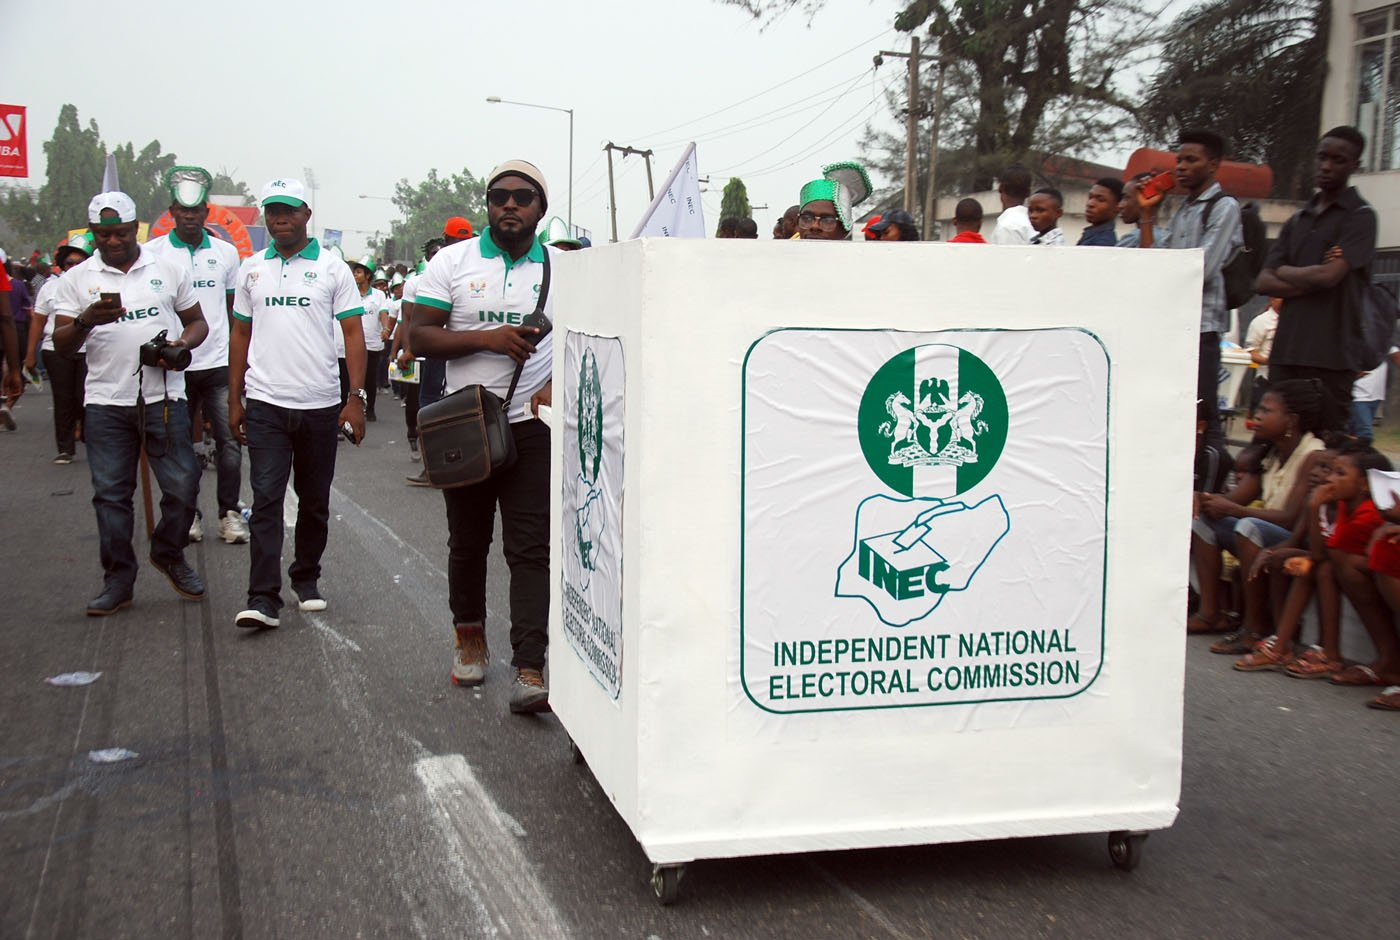 Members of Non-Competing Independent National Electoral Commission INEC Band during the Main Event of the 2017 Carnival Calabar in Cross River State Yesterday. Photo: Nwankpa Chijioke